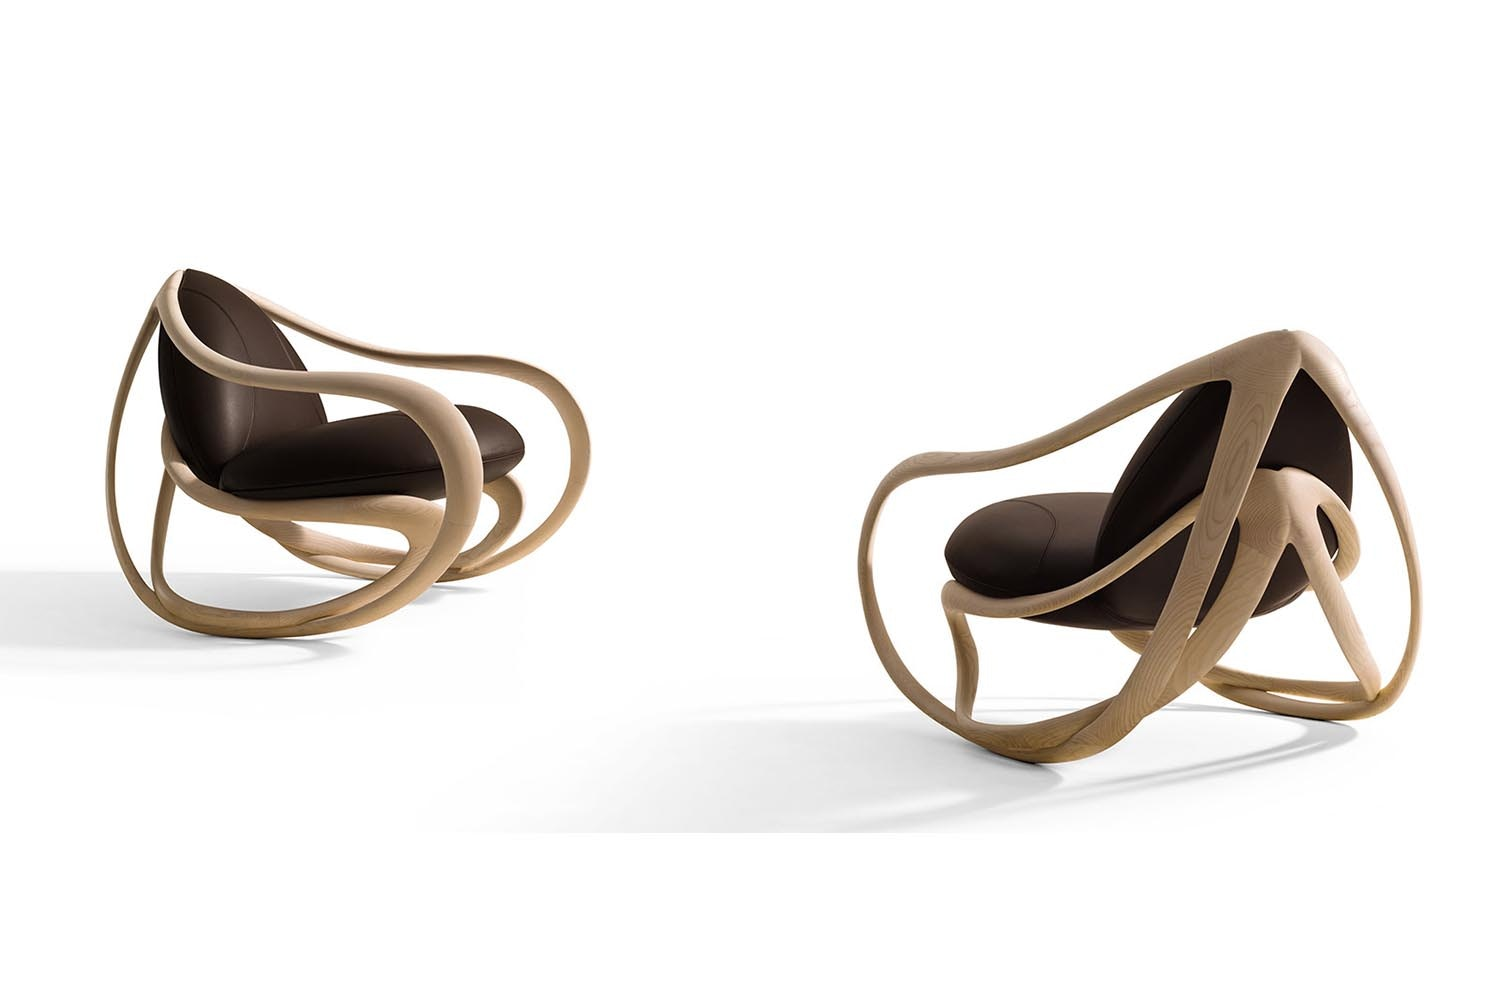 Move Rocking Armchair by Rossella Pugliatti for Giorgetti